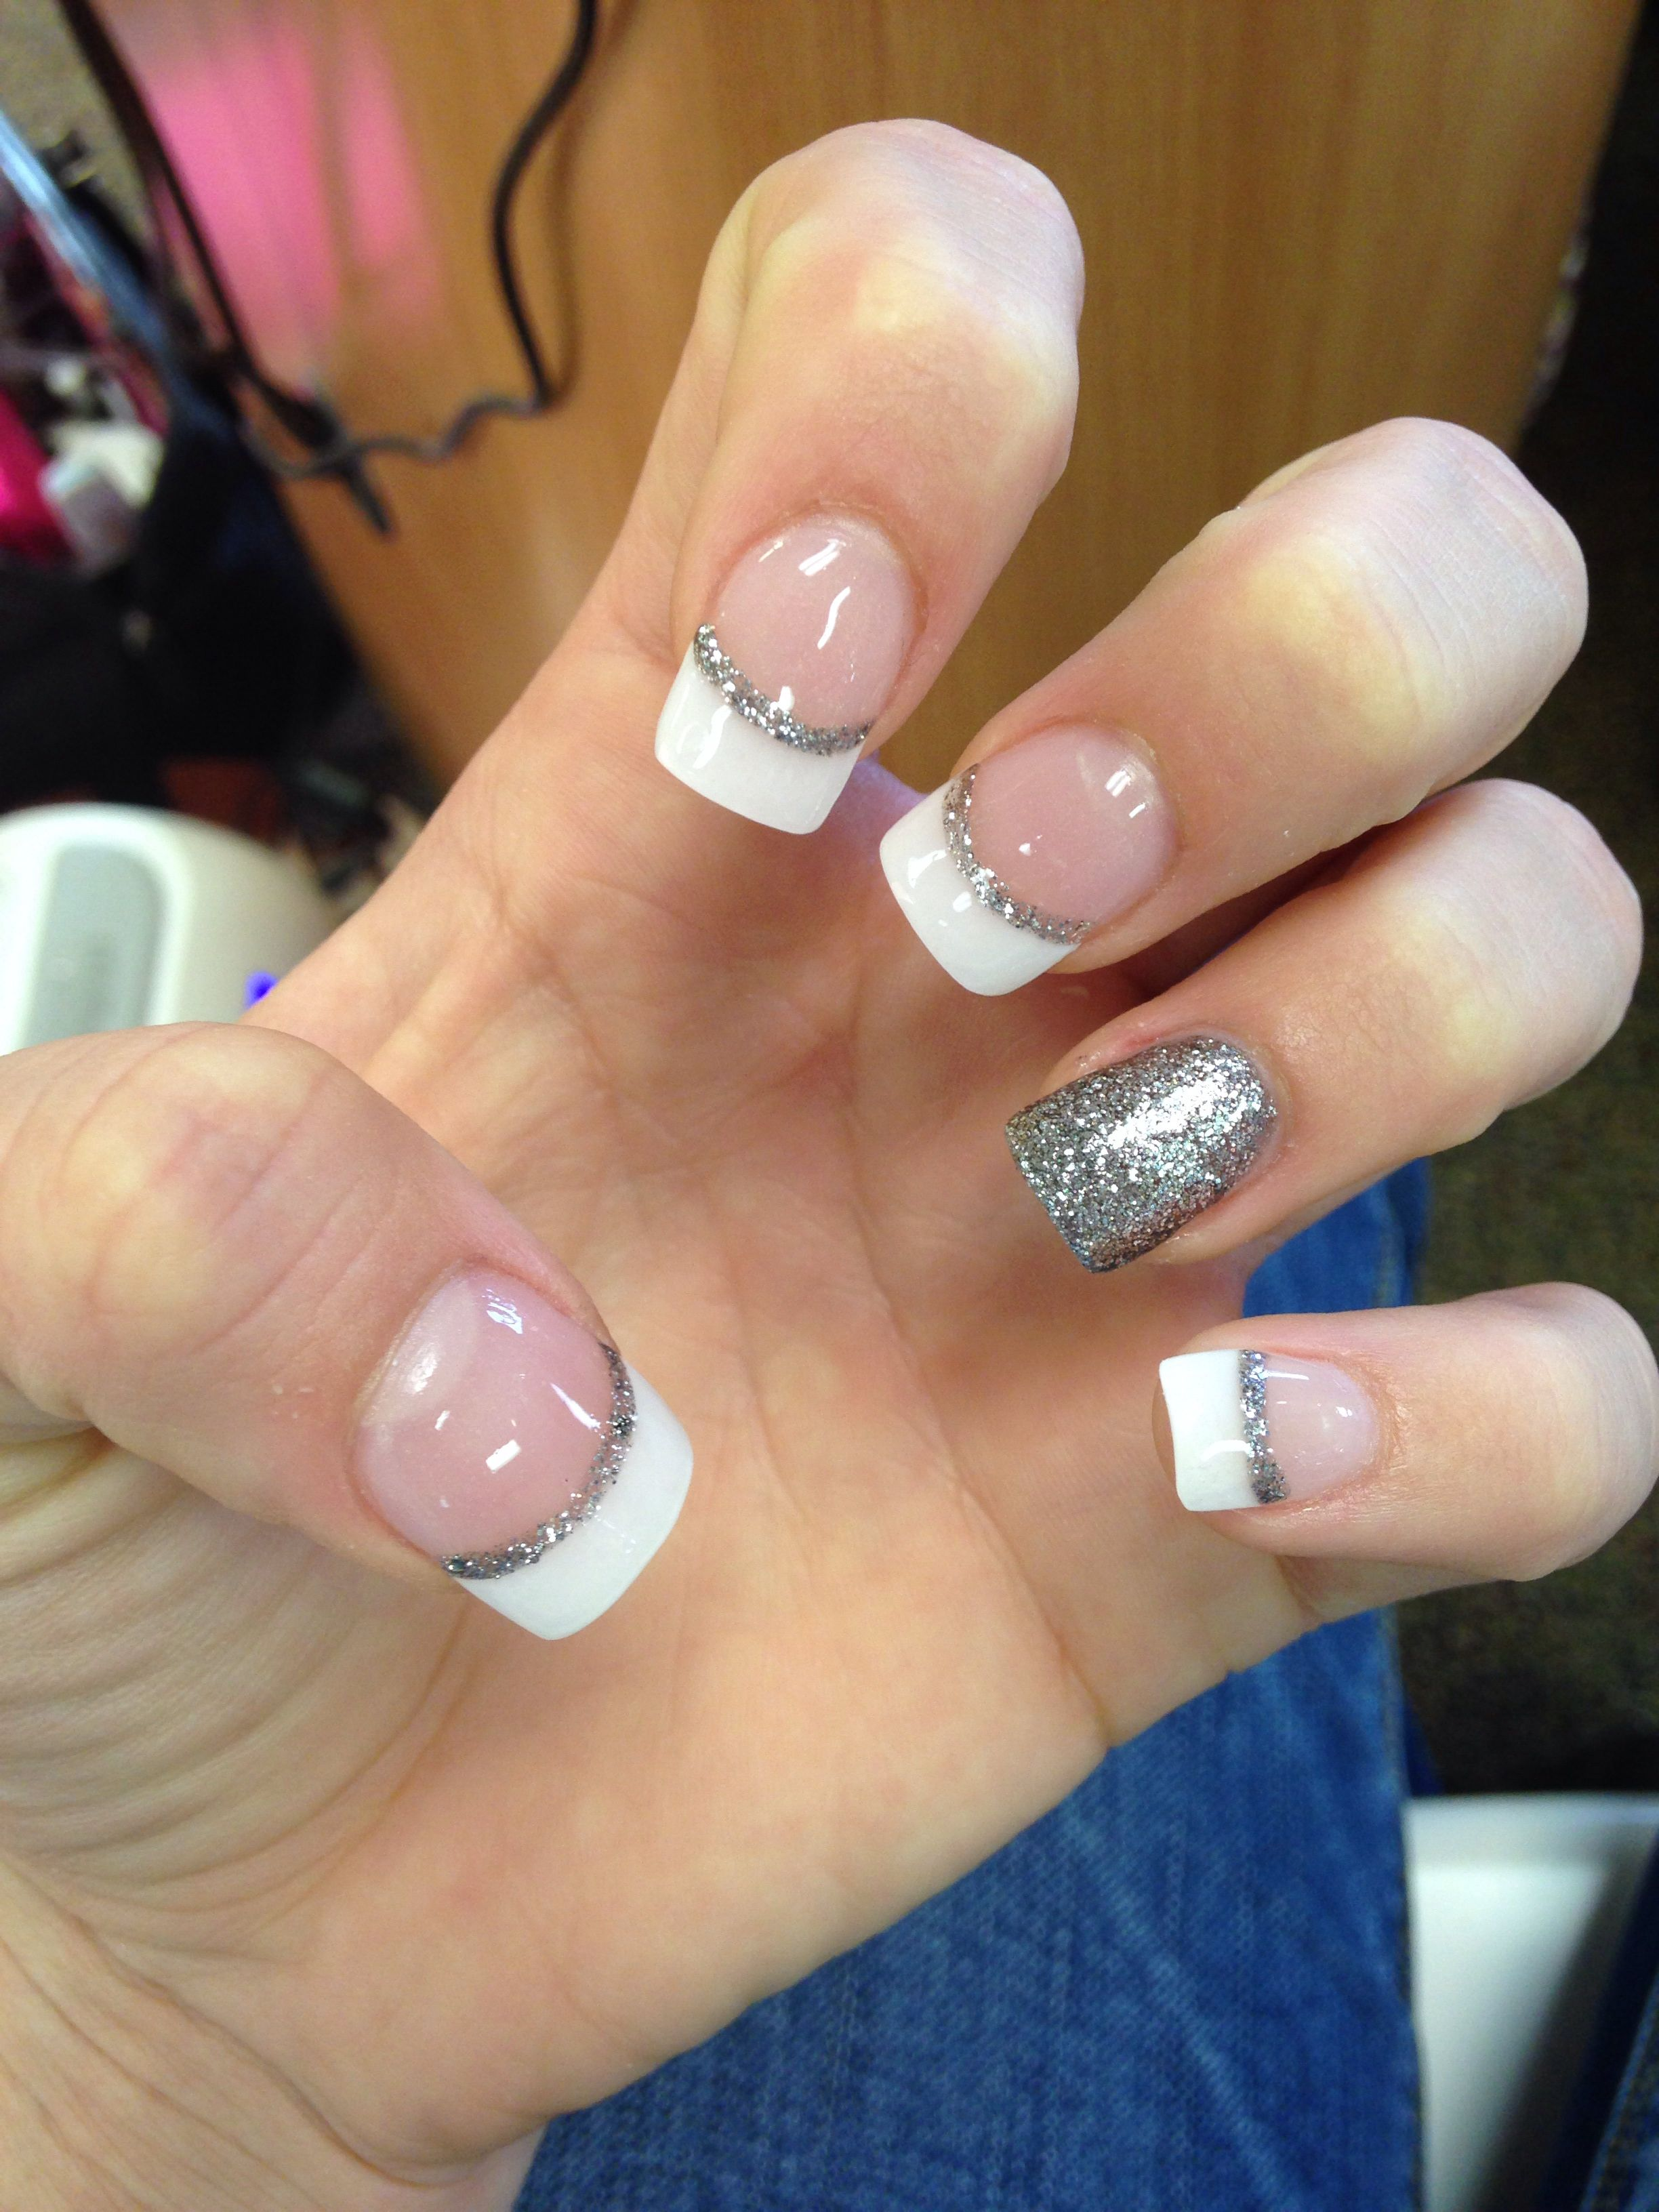 Pin By Heather Frye On Nails French Tip Gel Nails Gel Nails French Simple Gel Nails